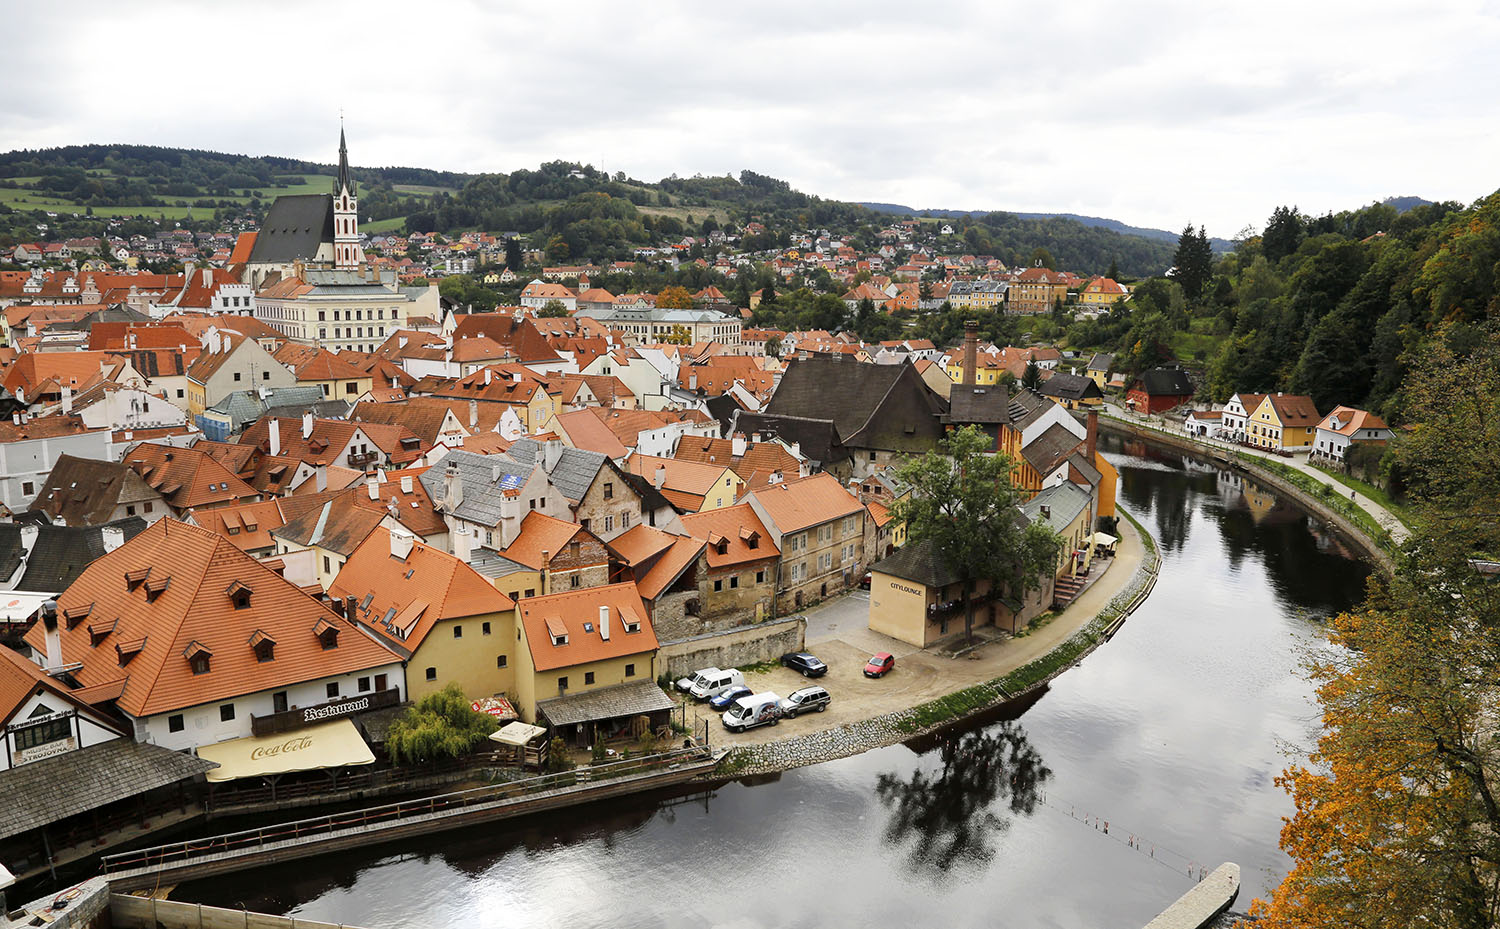 Reflections in the Vltava